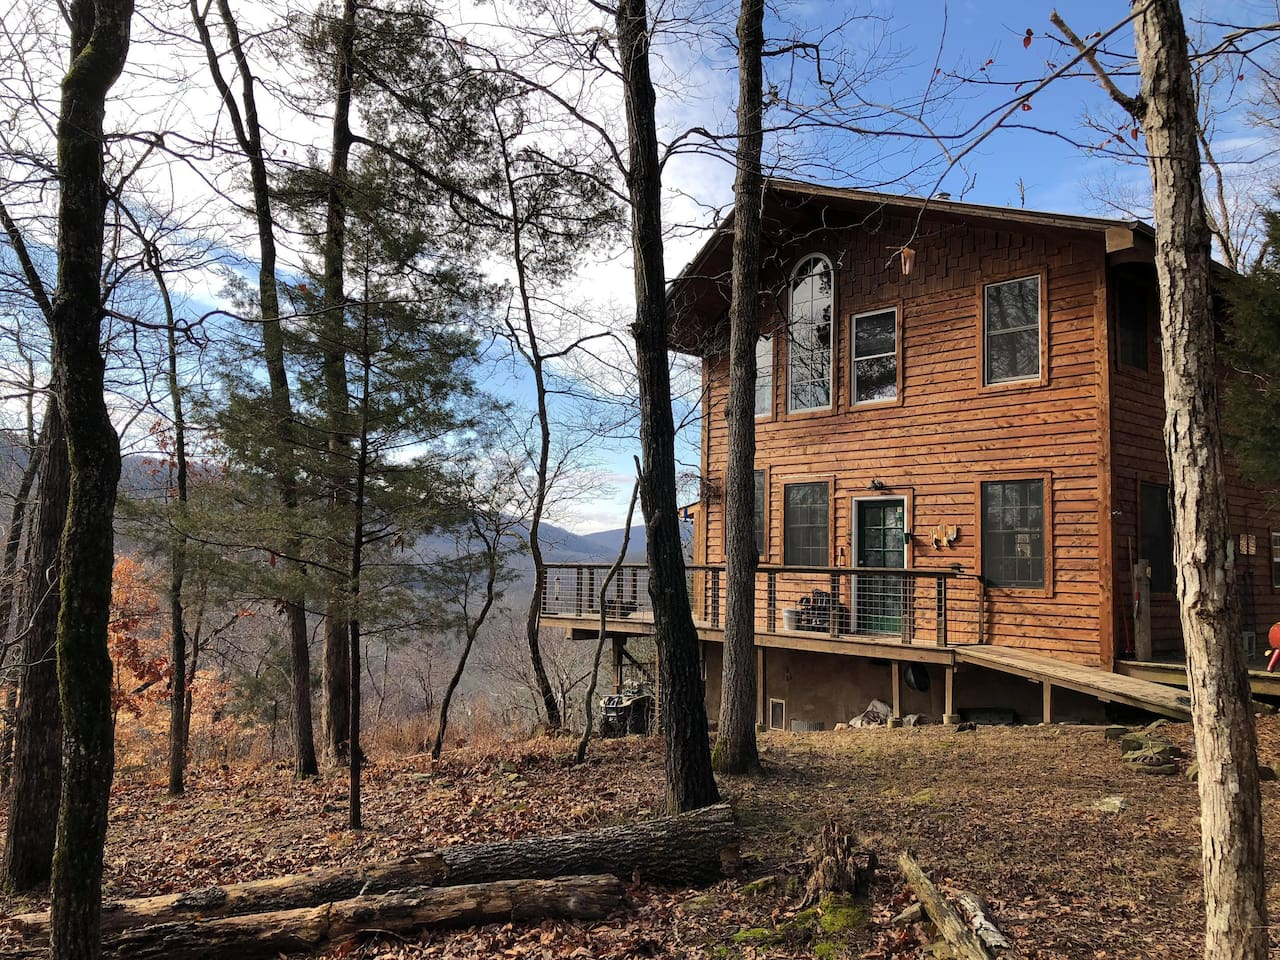 Off-grid cabin with modern solar system faces due south over Beech Creek, which feeds into the Buffalo River one mile downstream.